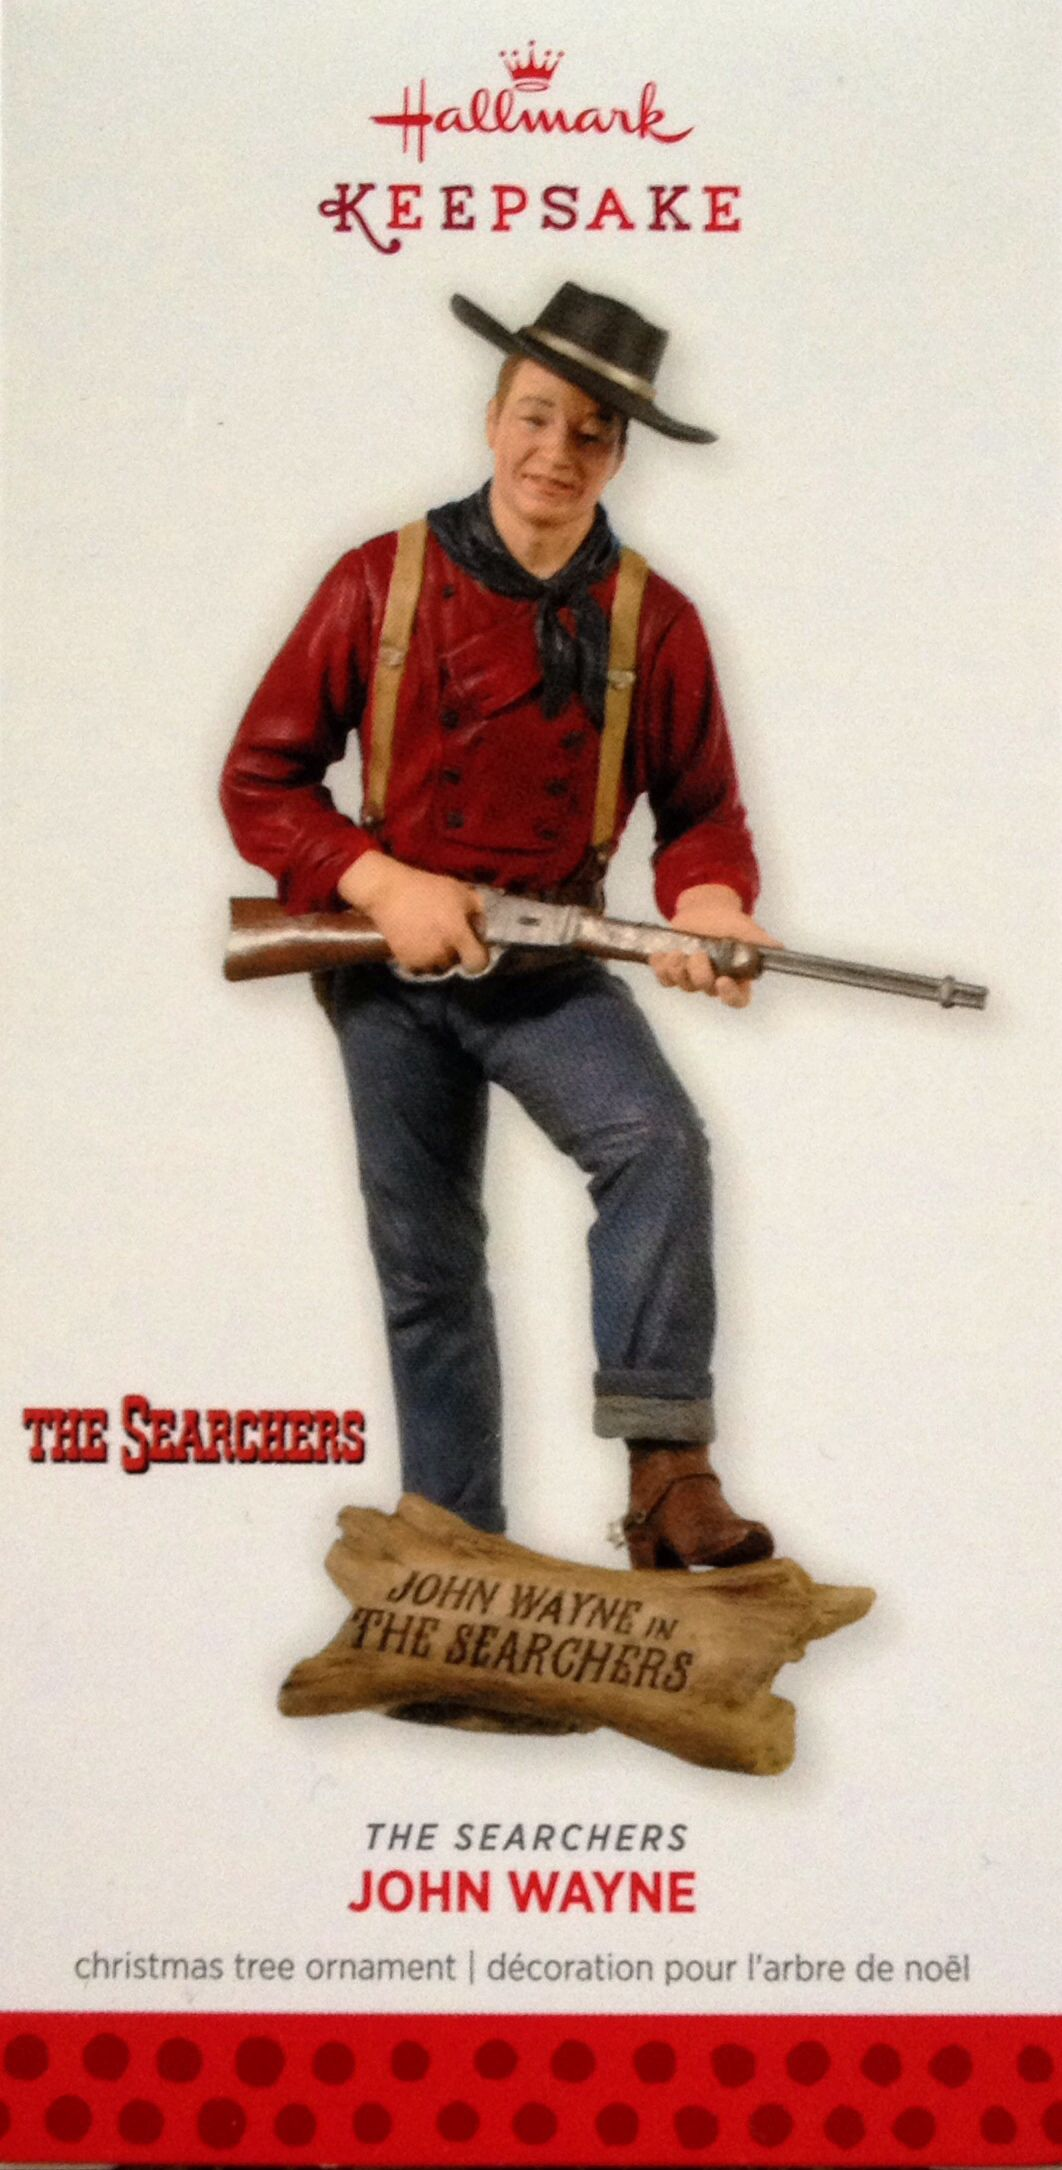 Hallmark ornament. The Searchers. John Wayne. 2013 | ornaments i ...